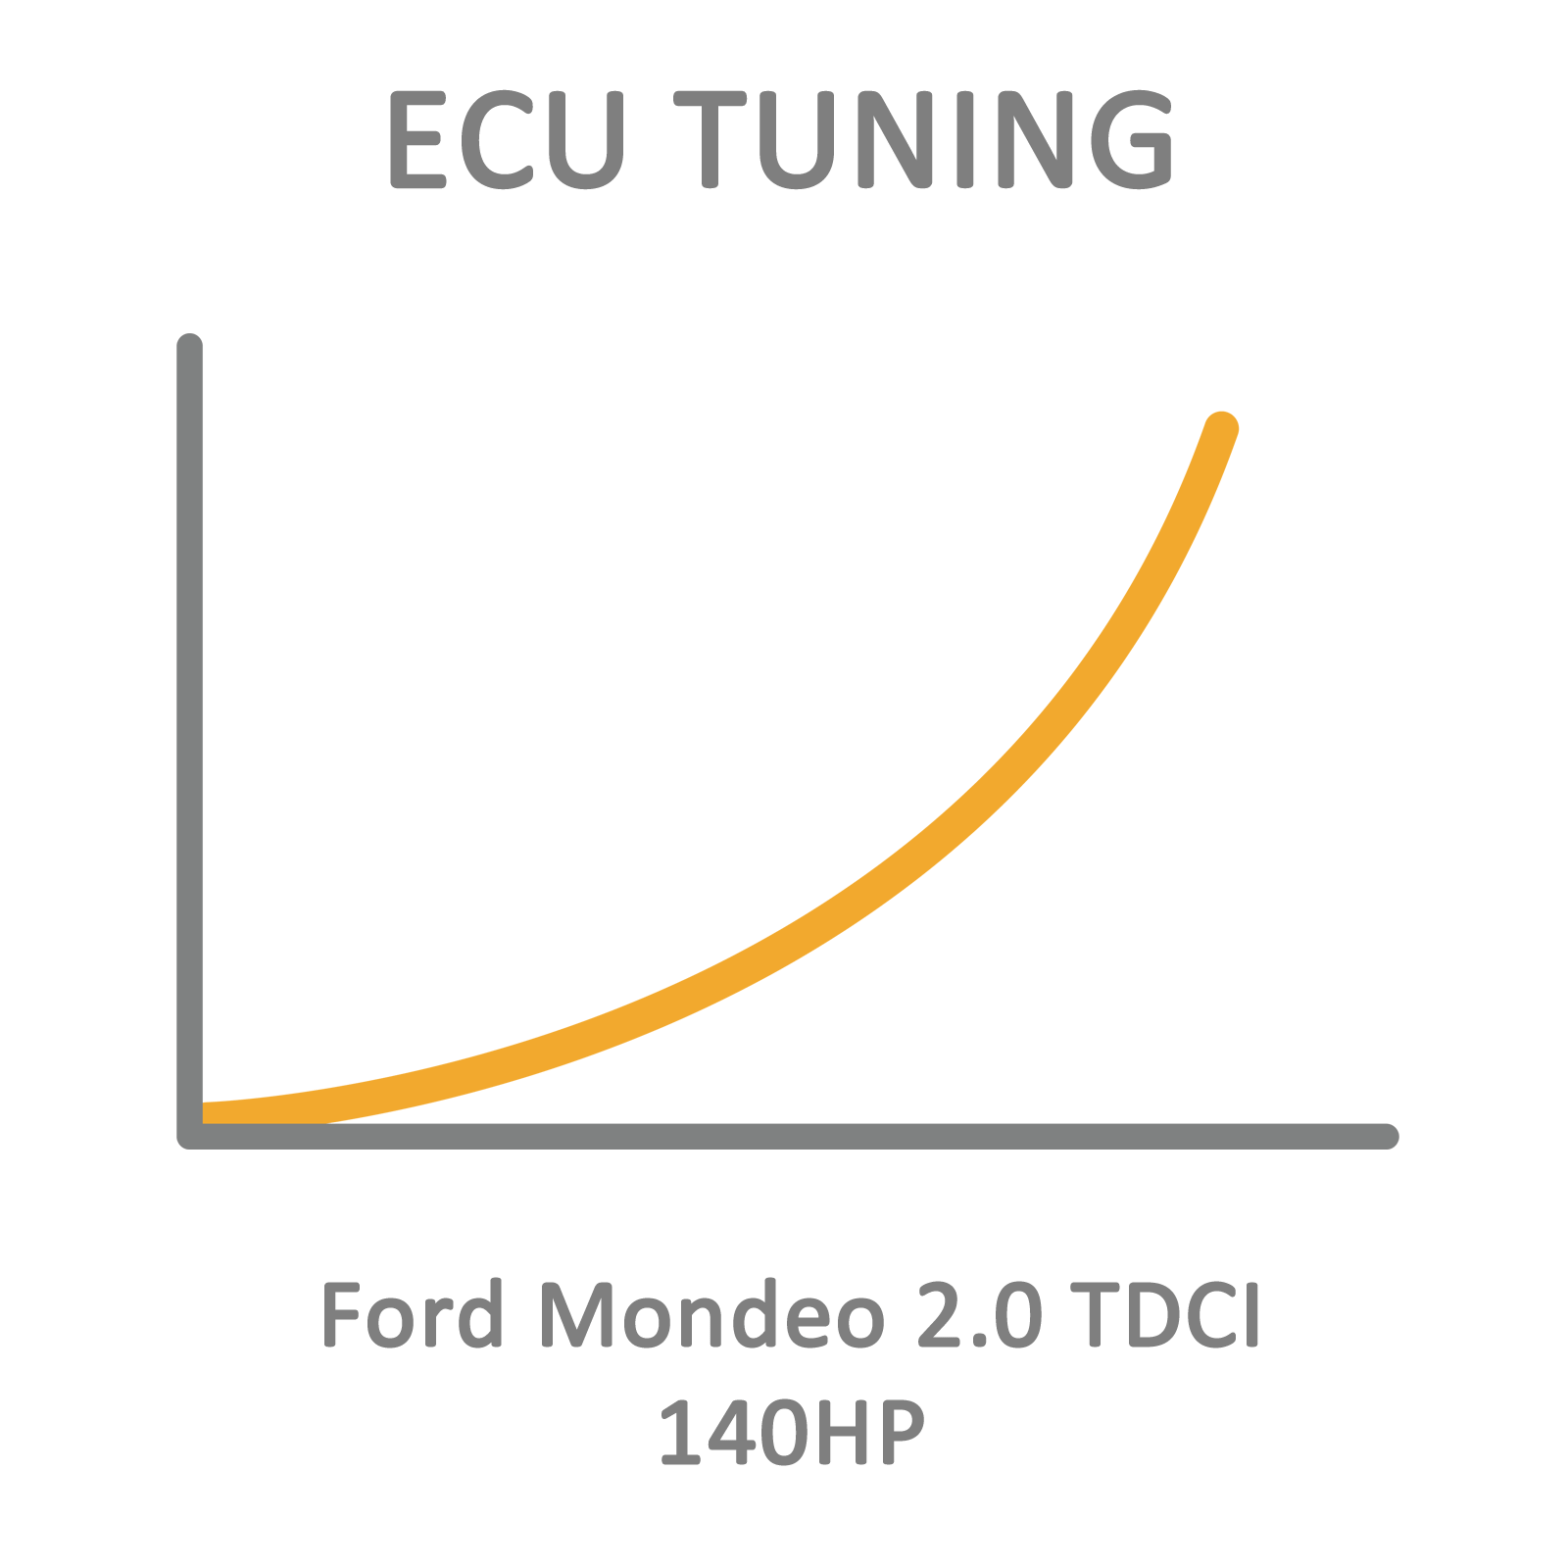 Ford Mondeo 2.0 TDCI 140HP ECU Tuning Remapping Programming